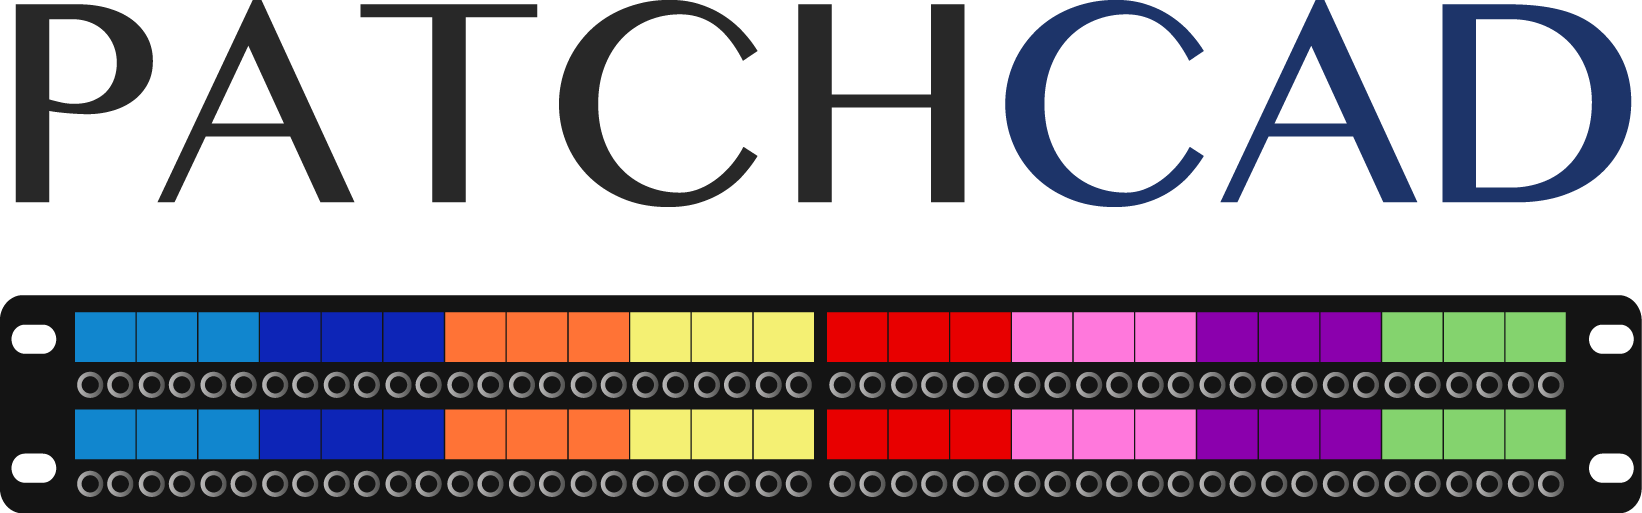 PatchCAD - Patchbay Design and Labelling on